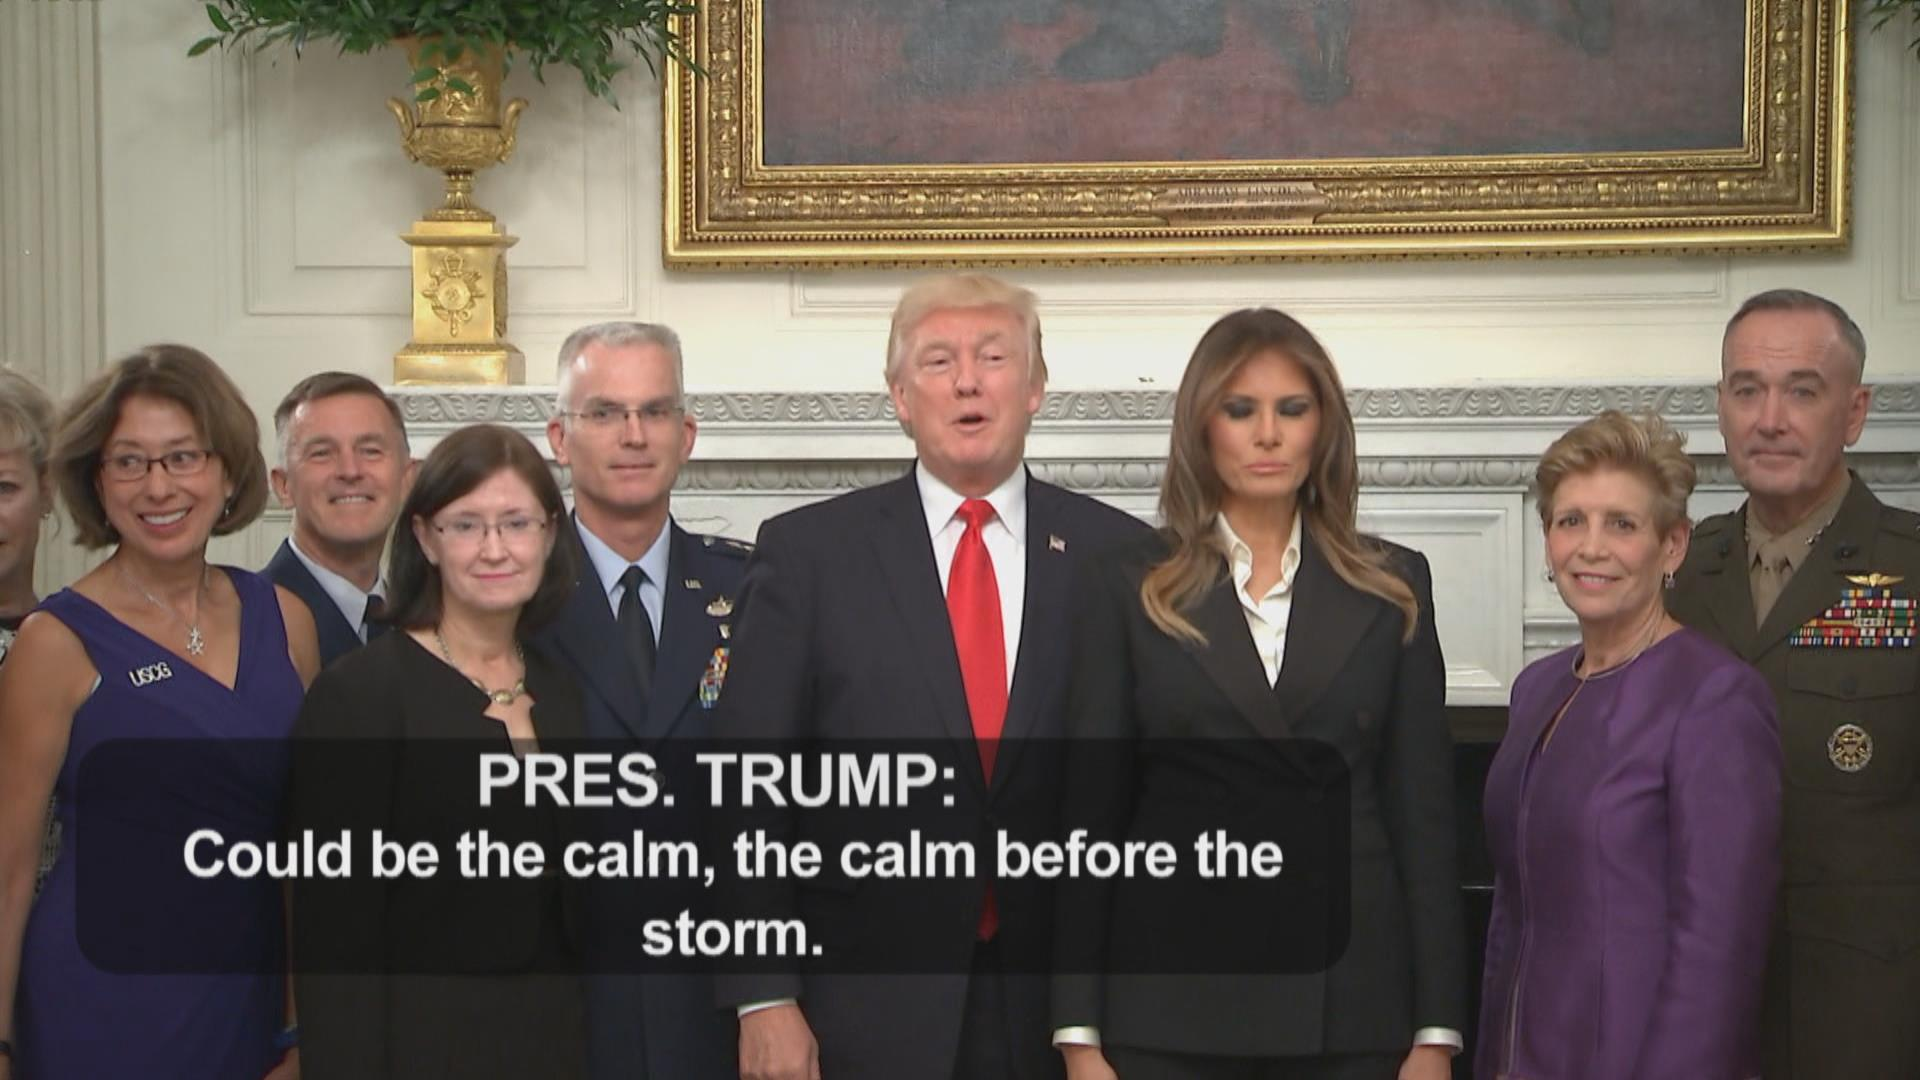 Trump says cryptically 'it's the calm...